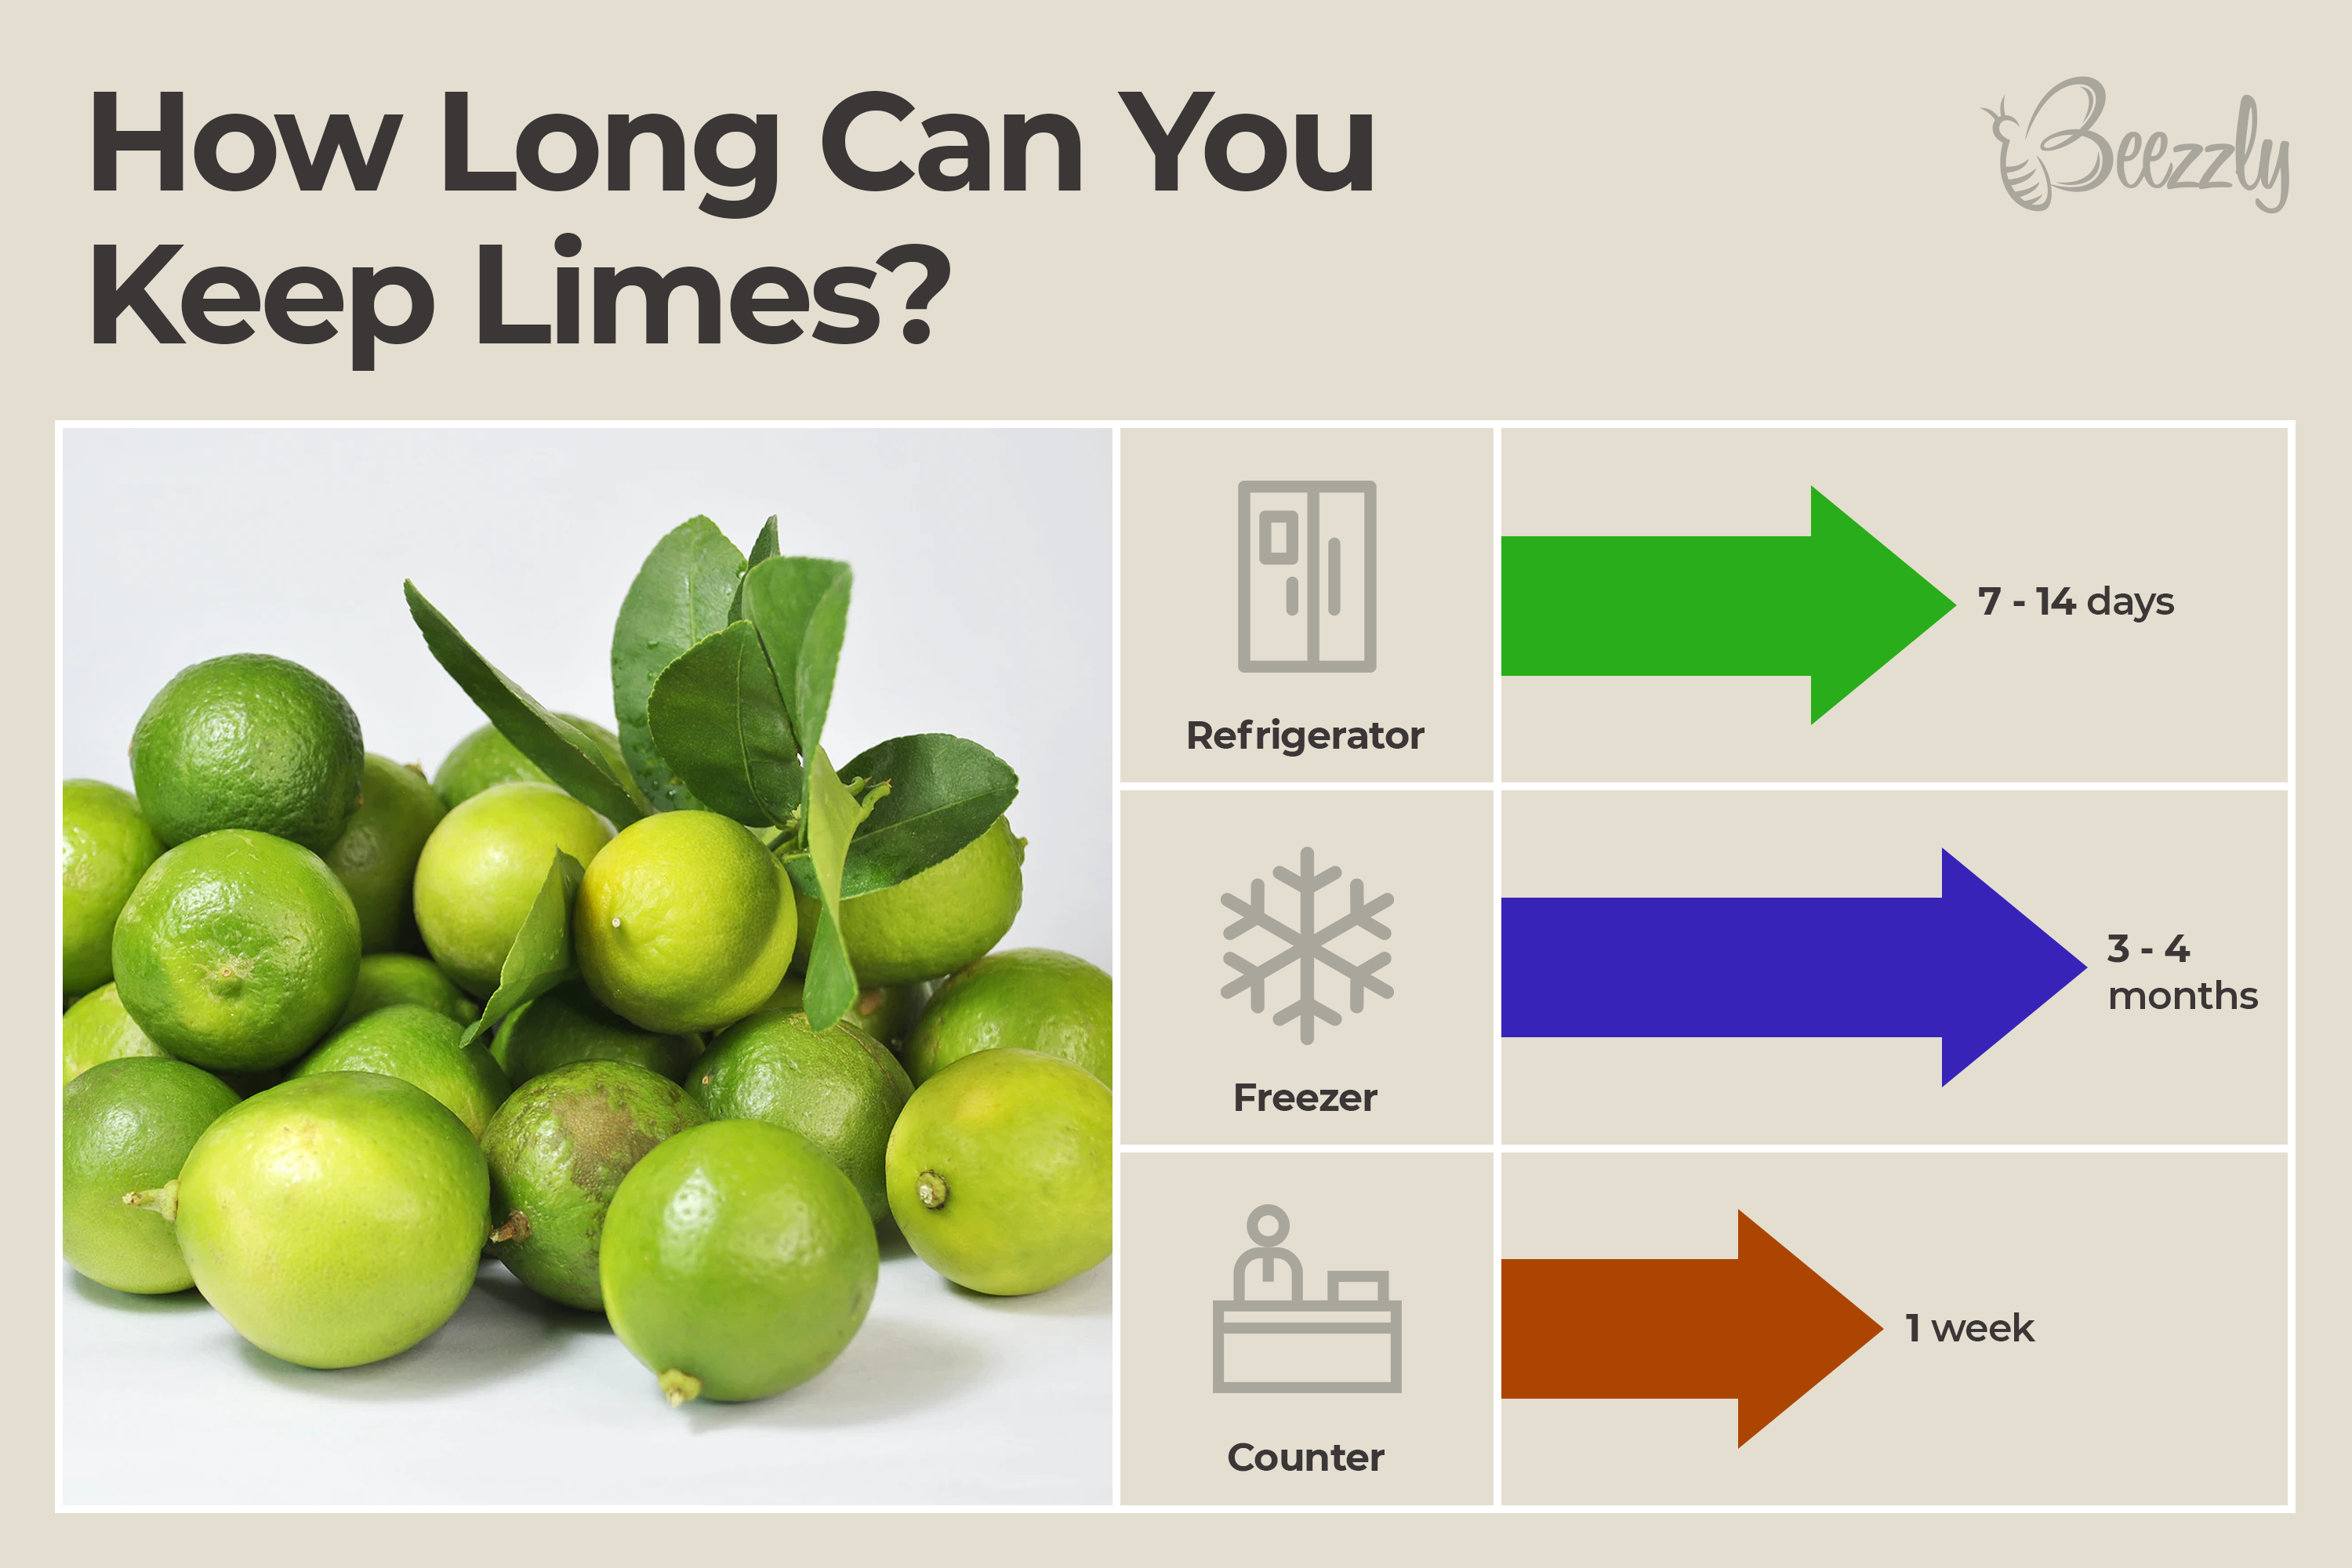 How Long Can You Keep Limes